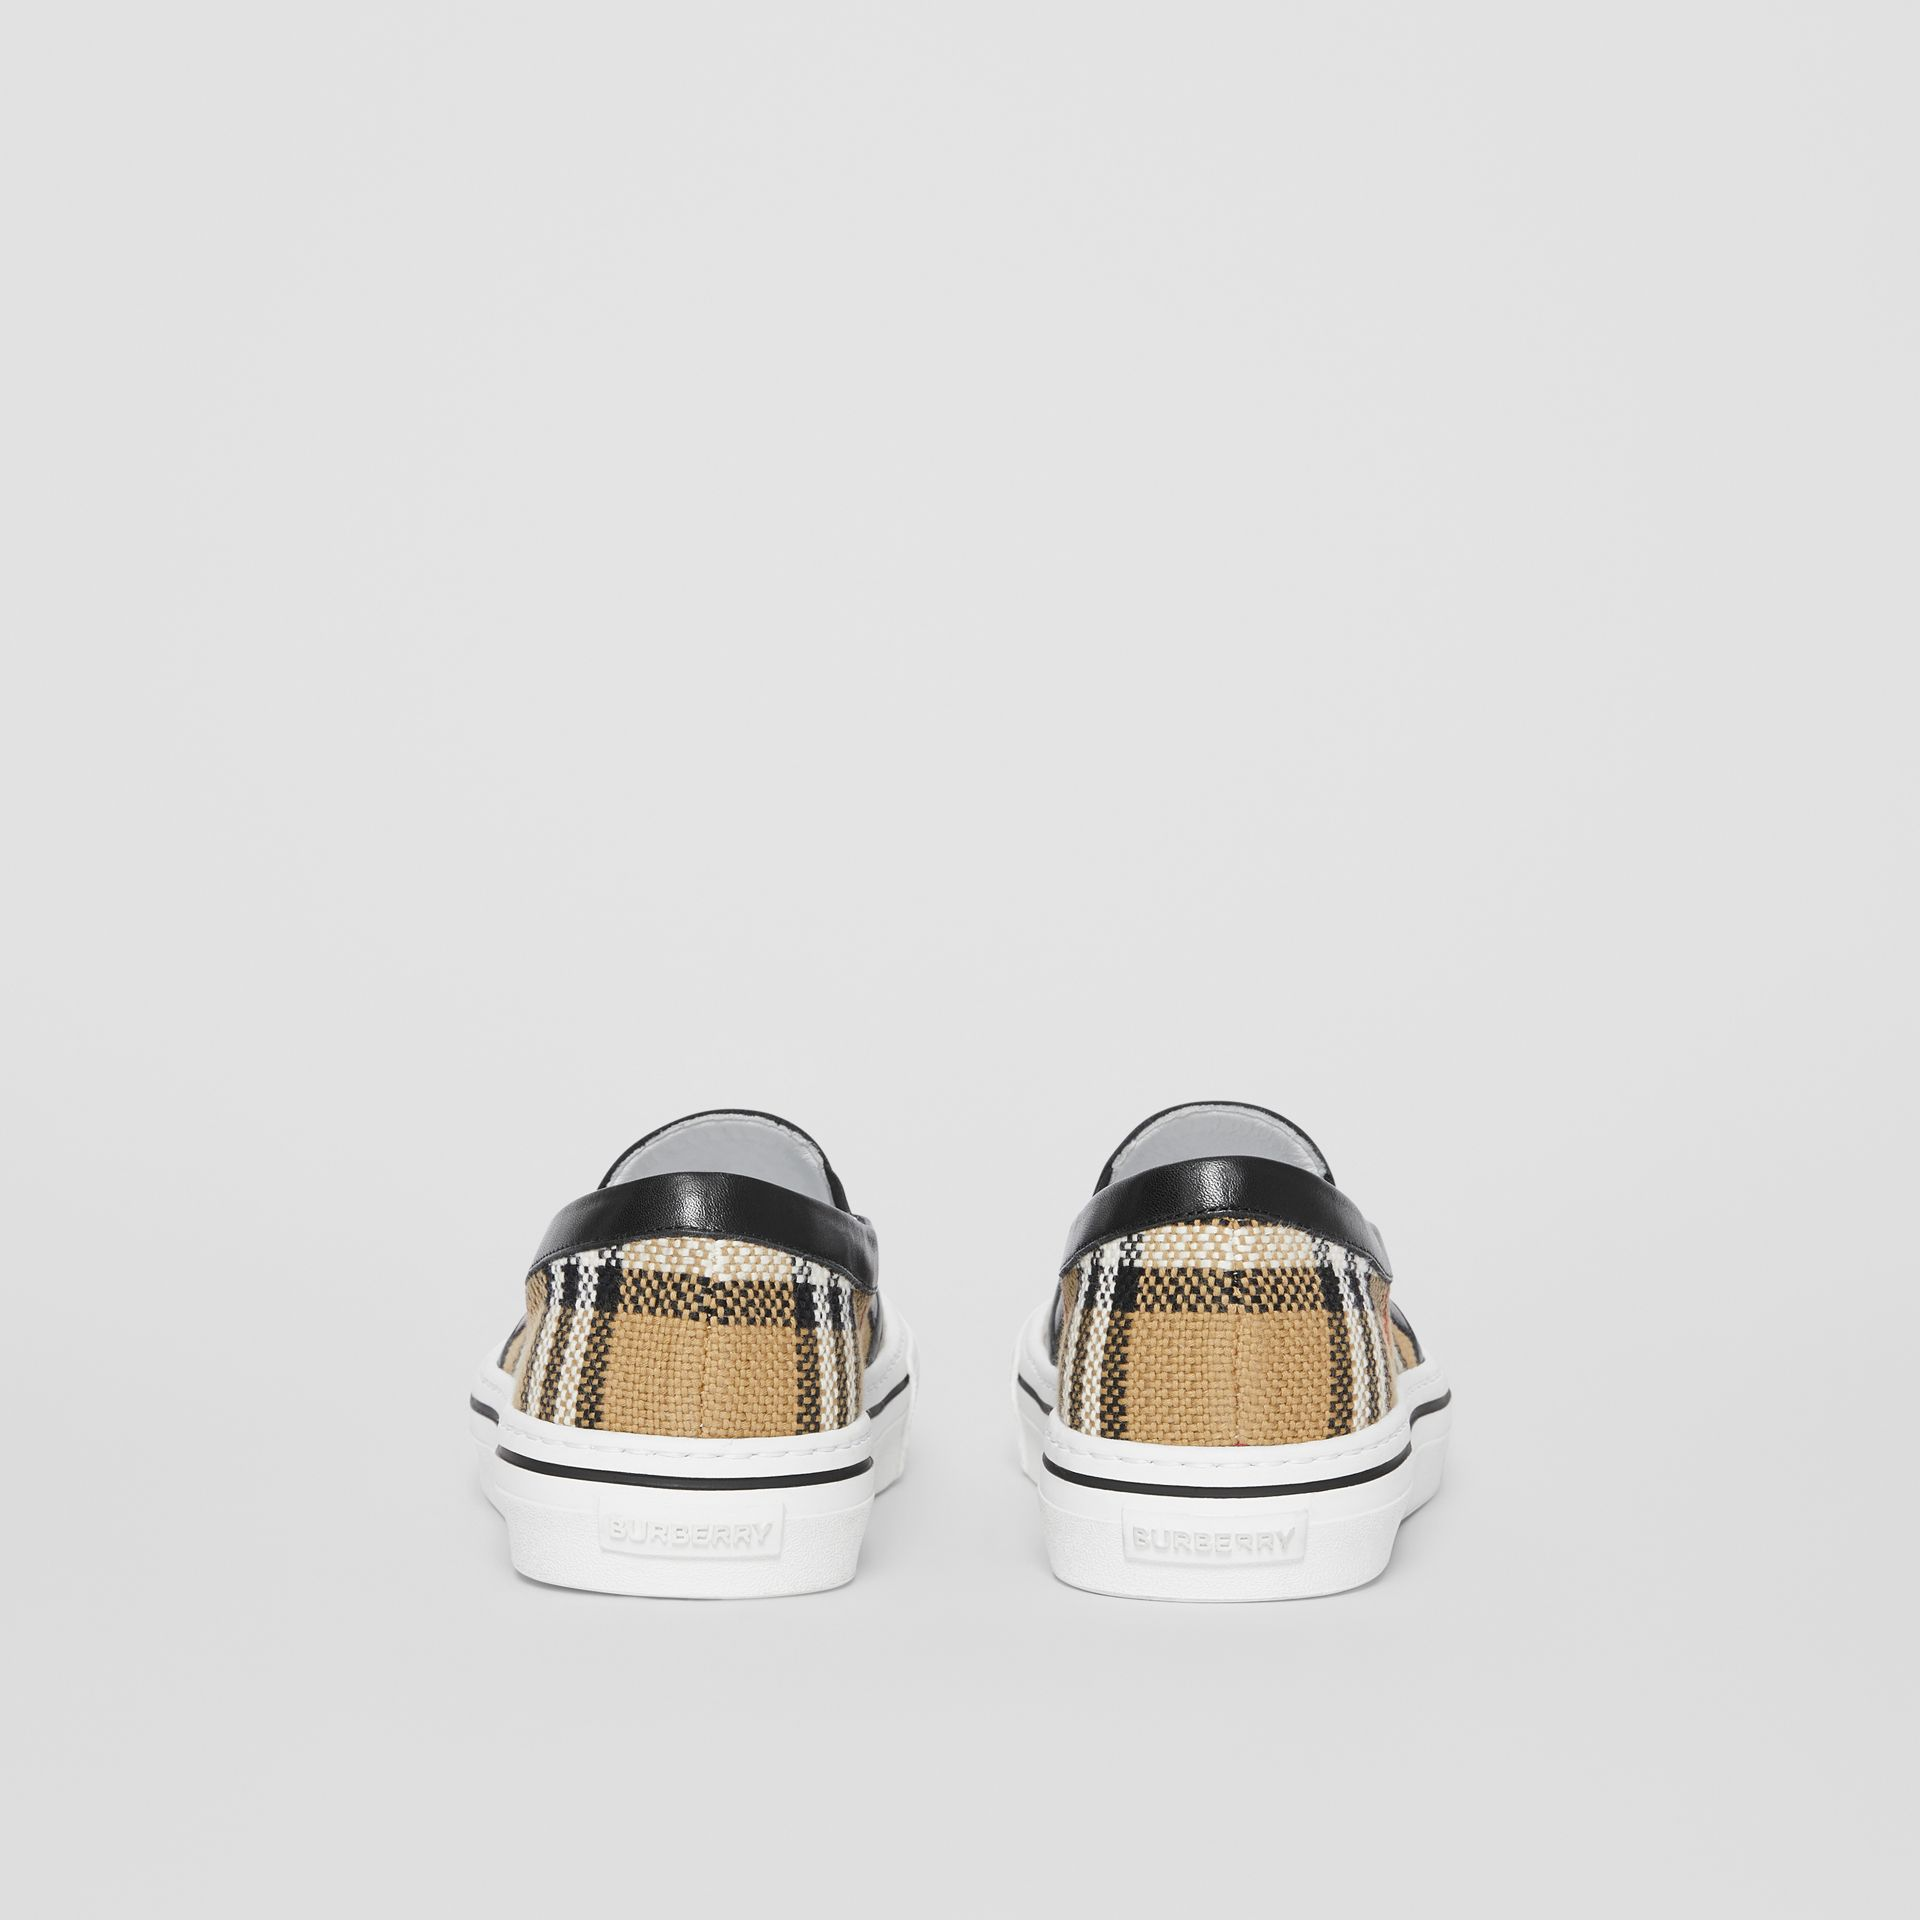 Vintage Check and Leather Slip-on Sneakers in Archive Beige - Women | Burberry Canada - gallery image 4